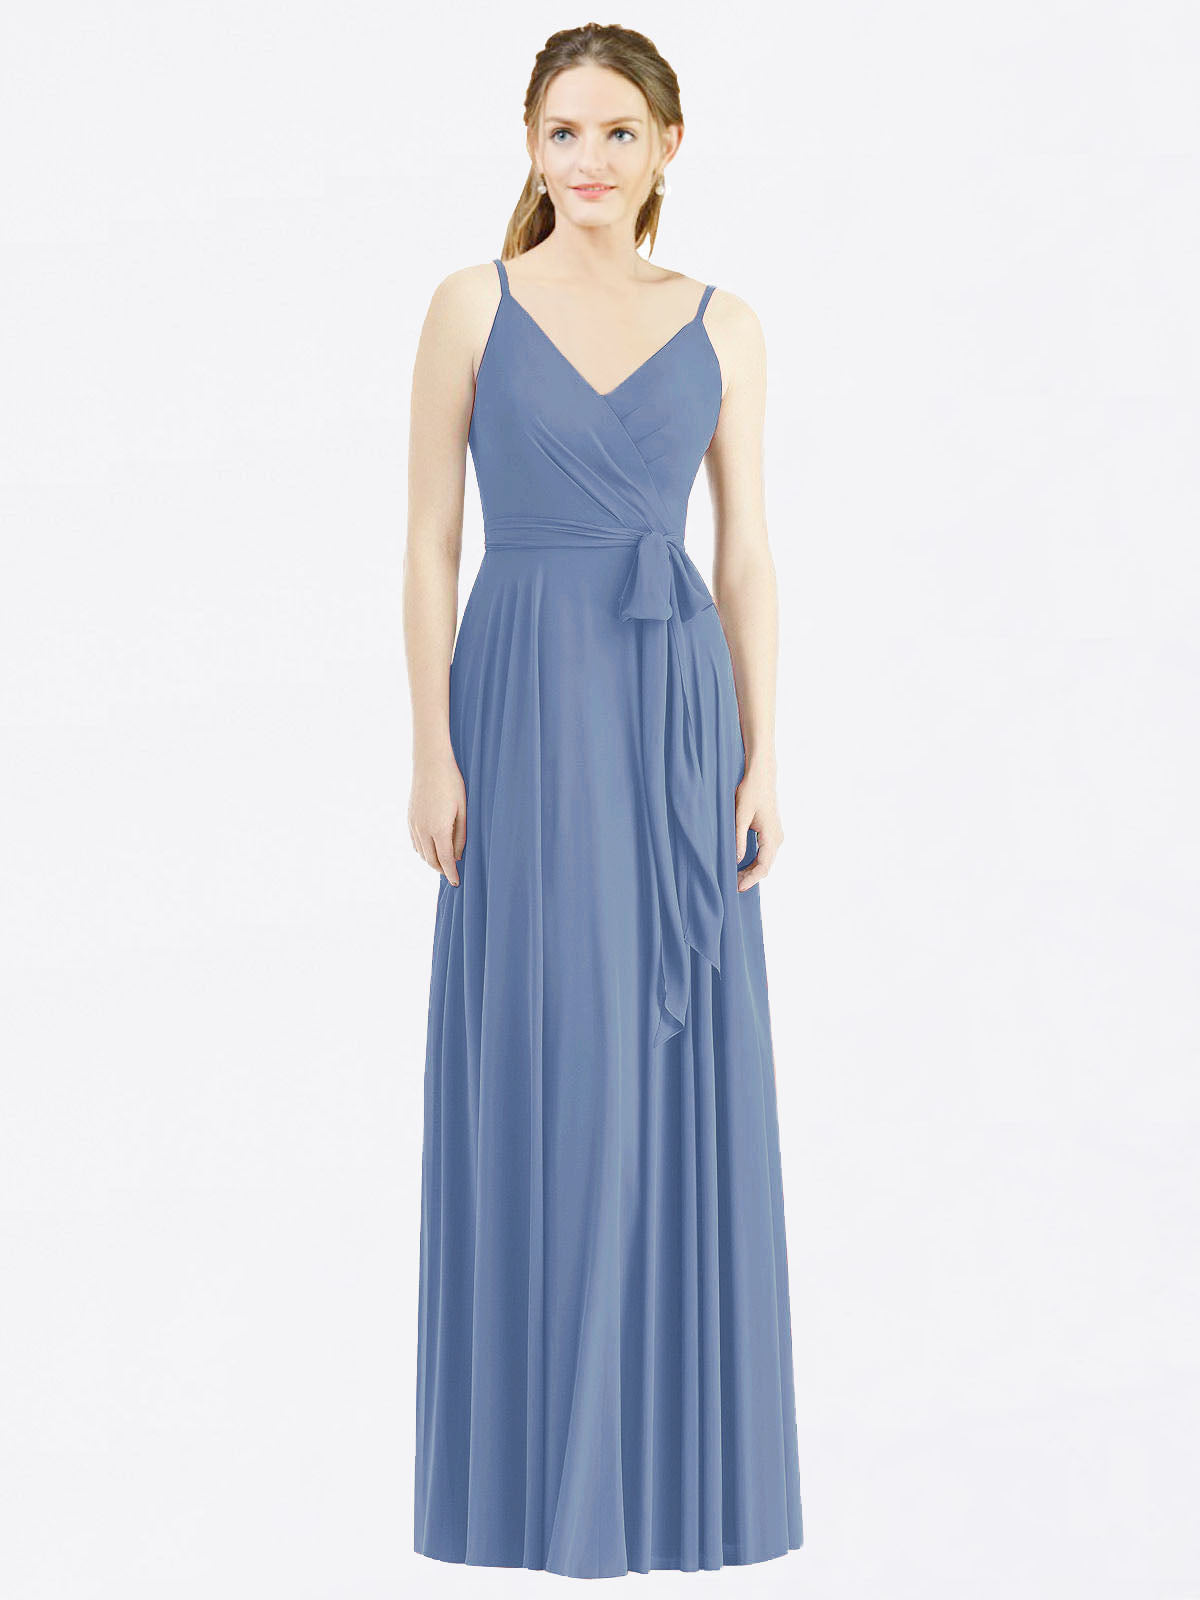 Long A-Line Spaghetti Straps, V-Neck Sleeveless Windsor Blue Chiffon Bridesmaid Dress Madilyn